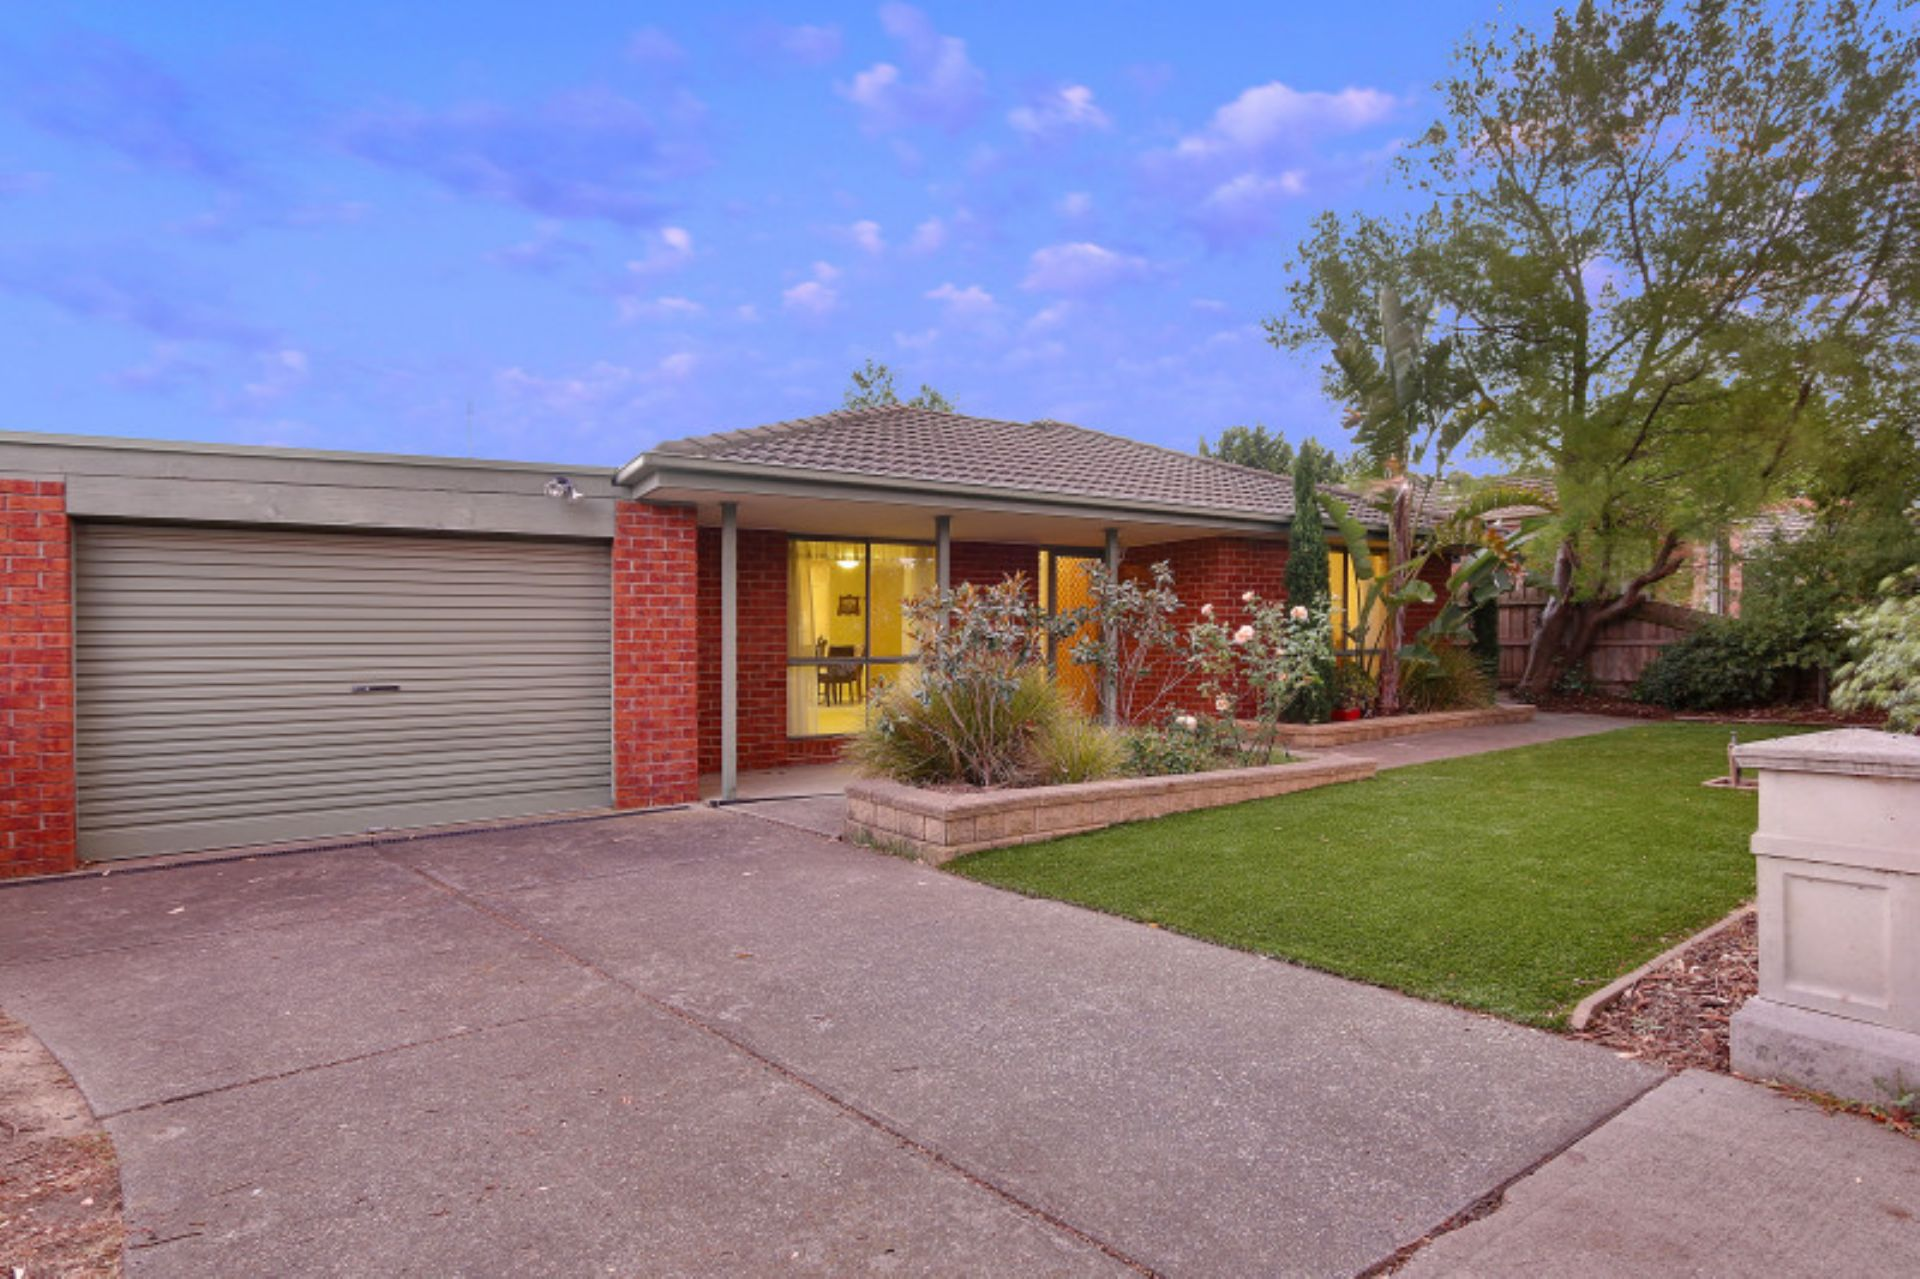 30 Harrap Road, MOUNT MARTHA, VIC, 3934 - Image